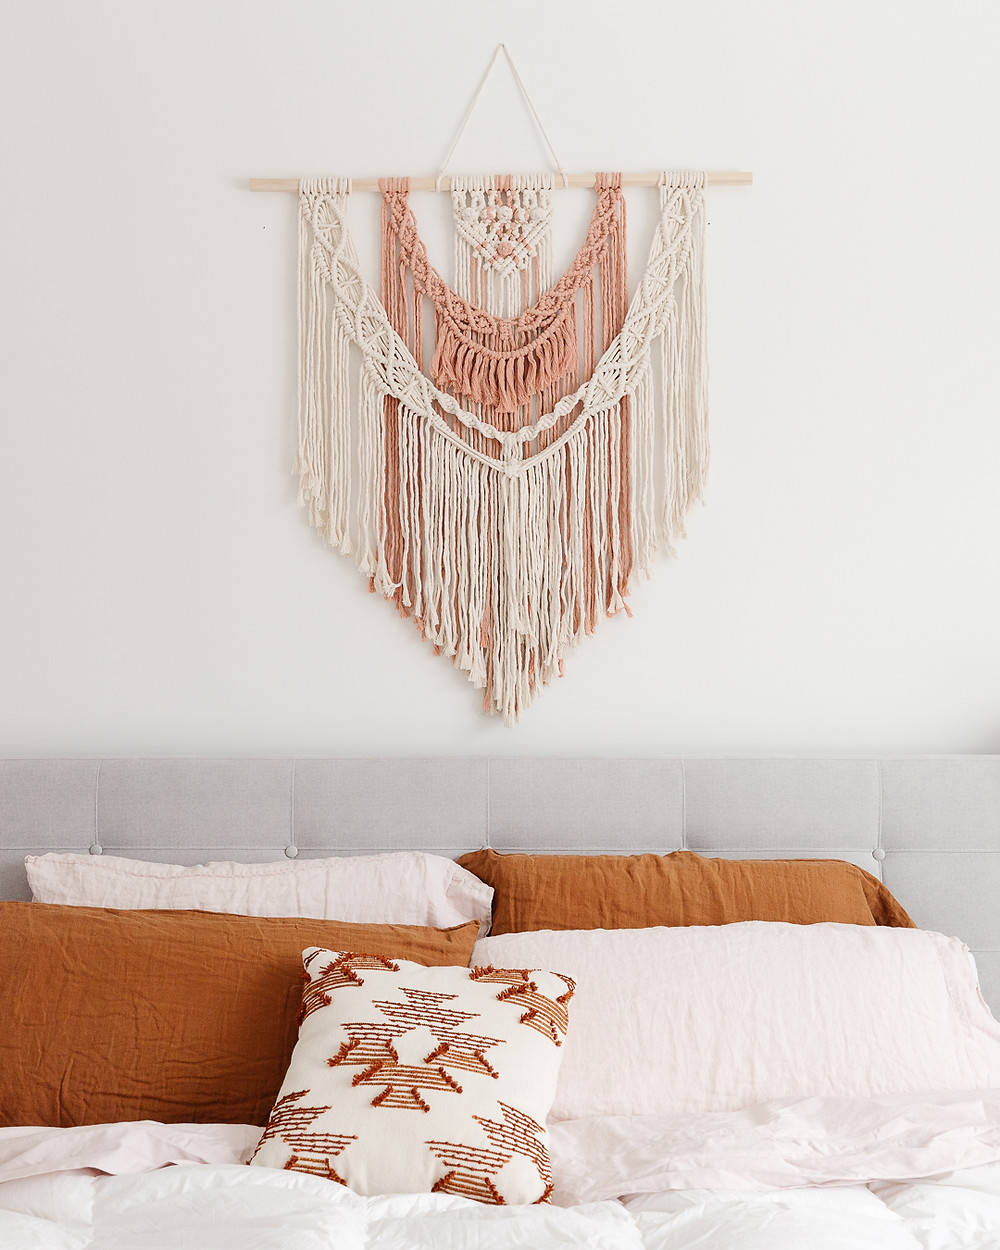 Macrame wall hanging natural wood with cream and blush accents above bed with grey headboard and rust and white pillowcases aztec pattern throw pillow accent